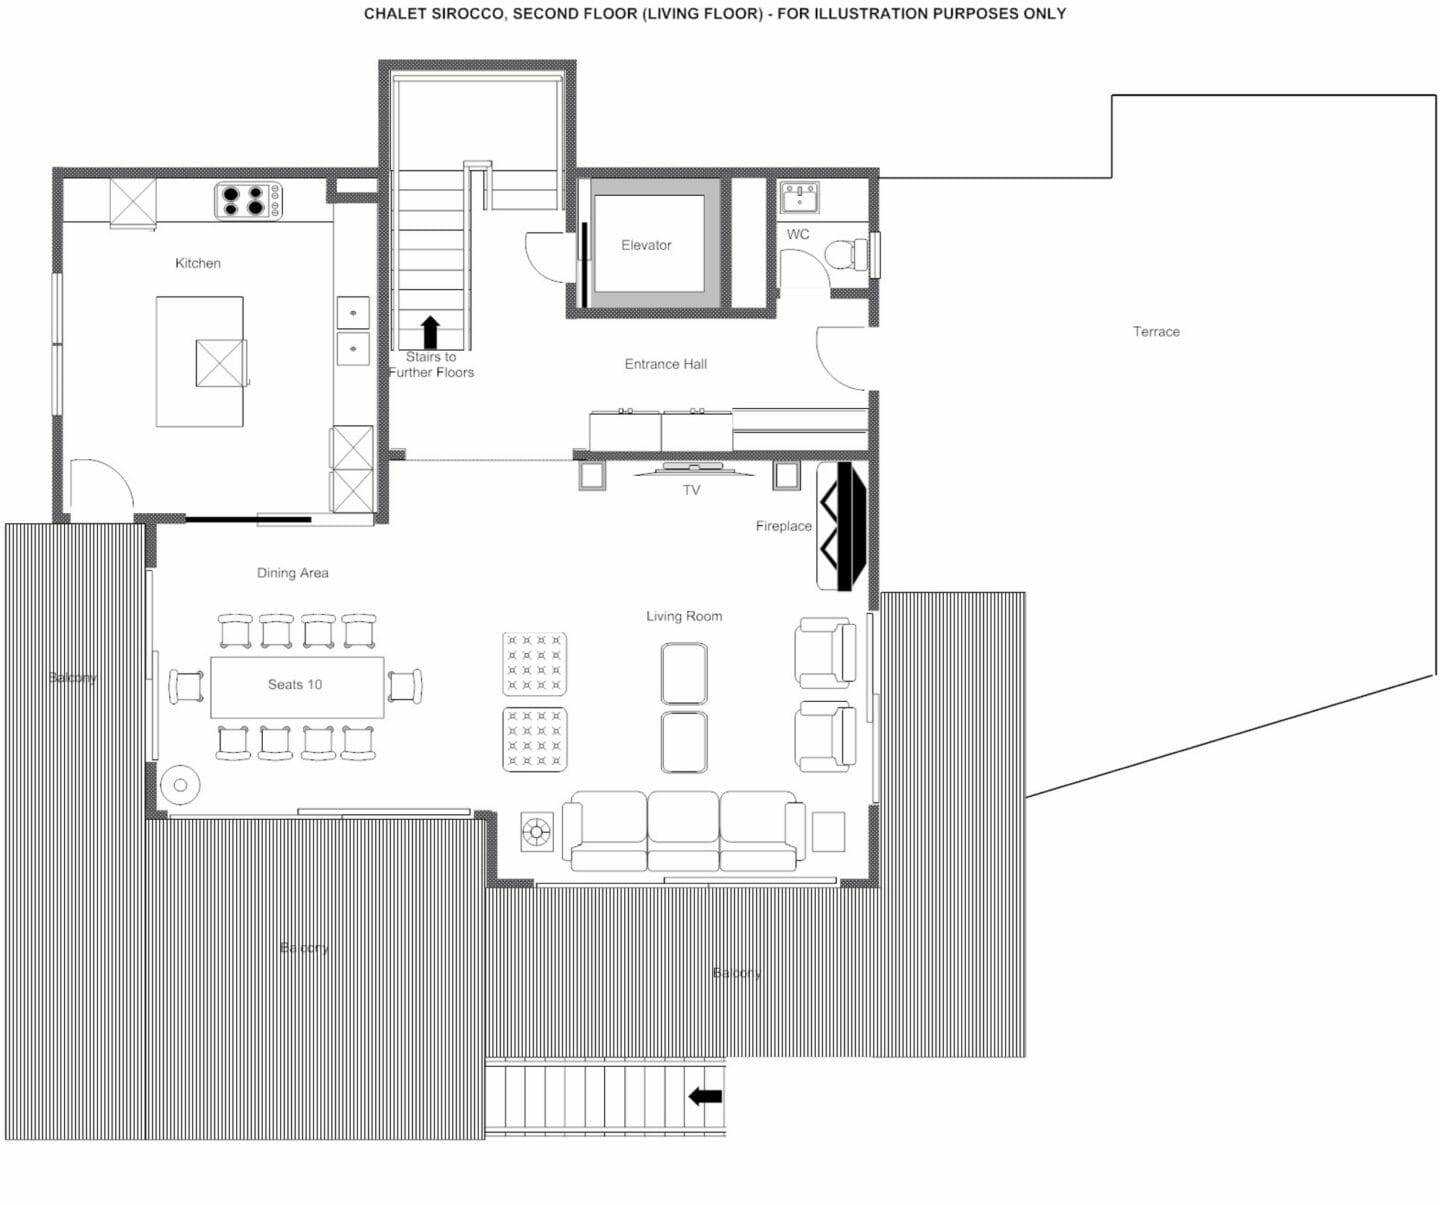 Second floor plans of Chalet Sirocco, Verbier